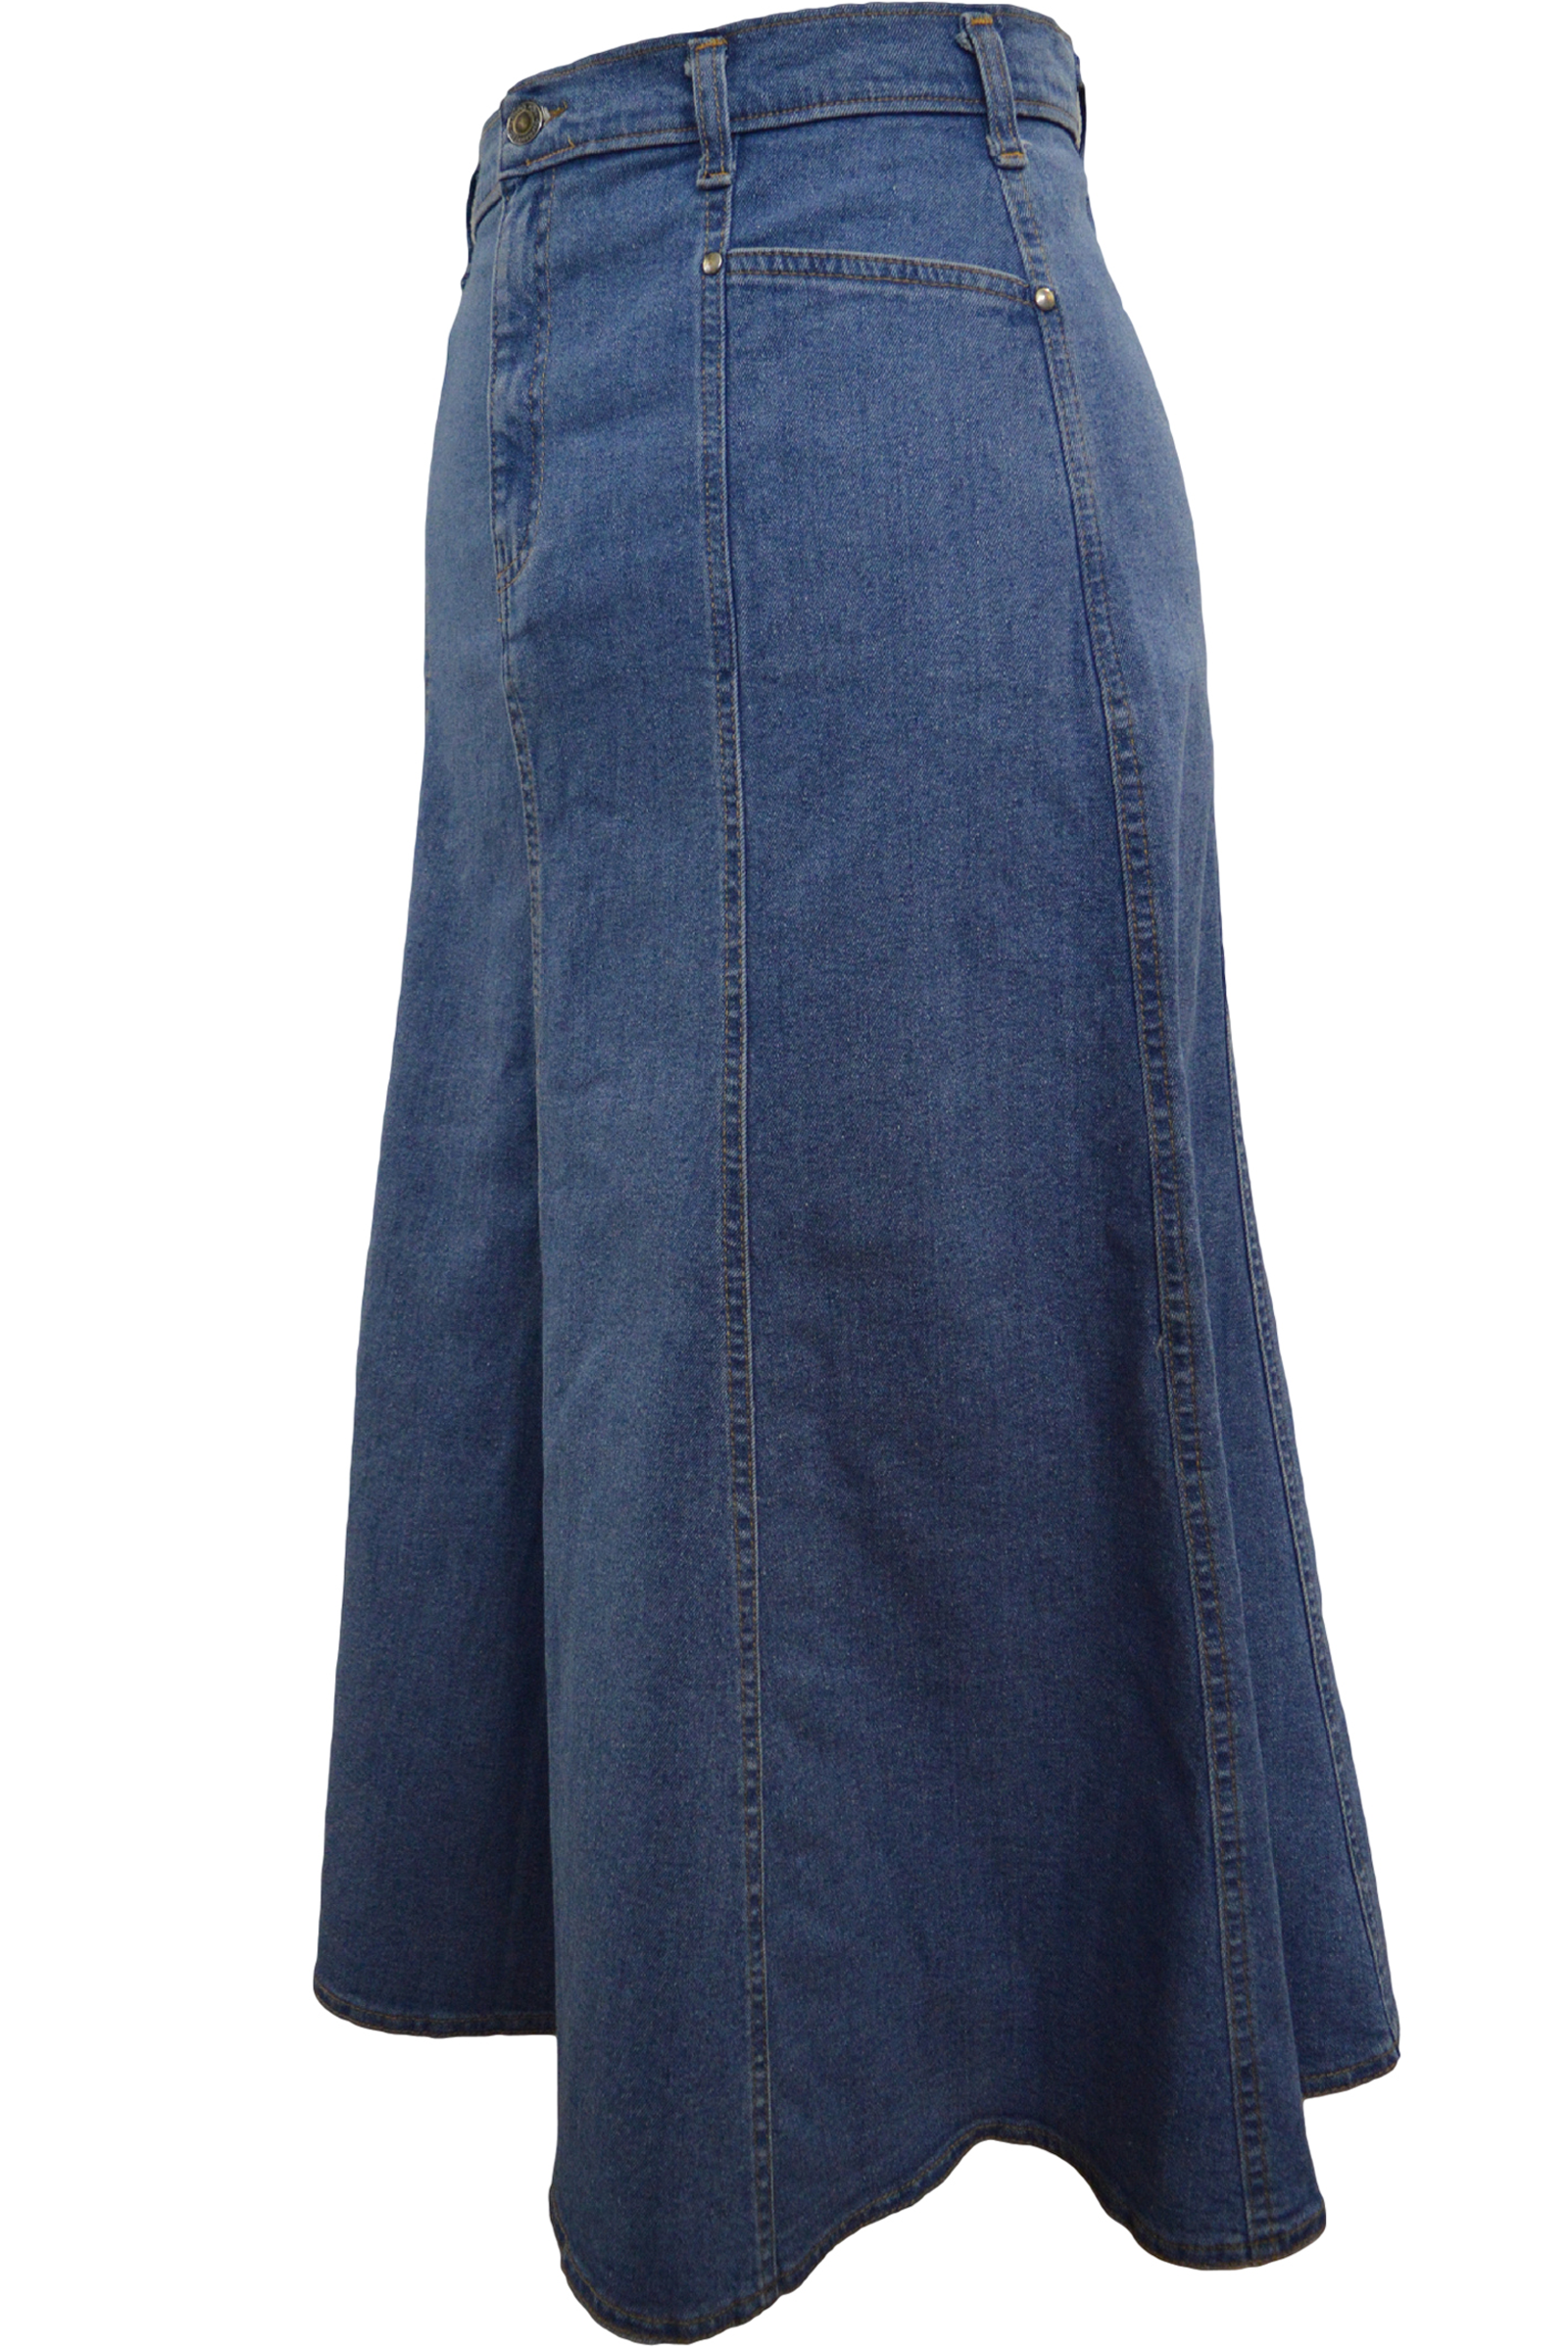 Women/Plus Long Flared Stonewash Stretch Denim Skirt